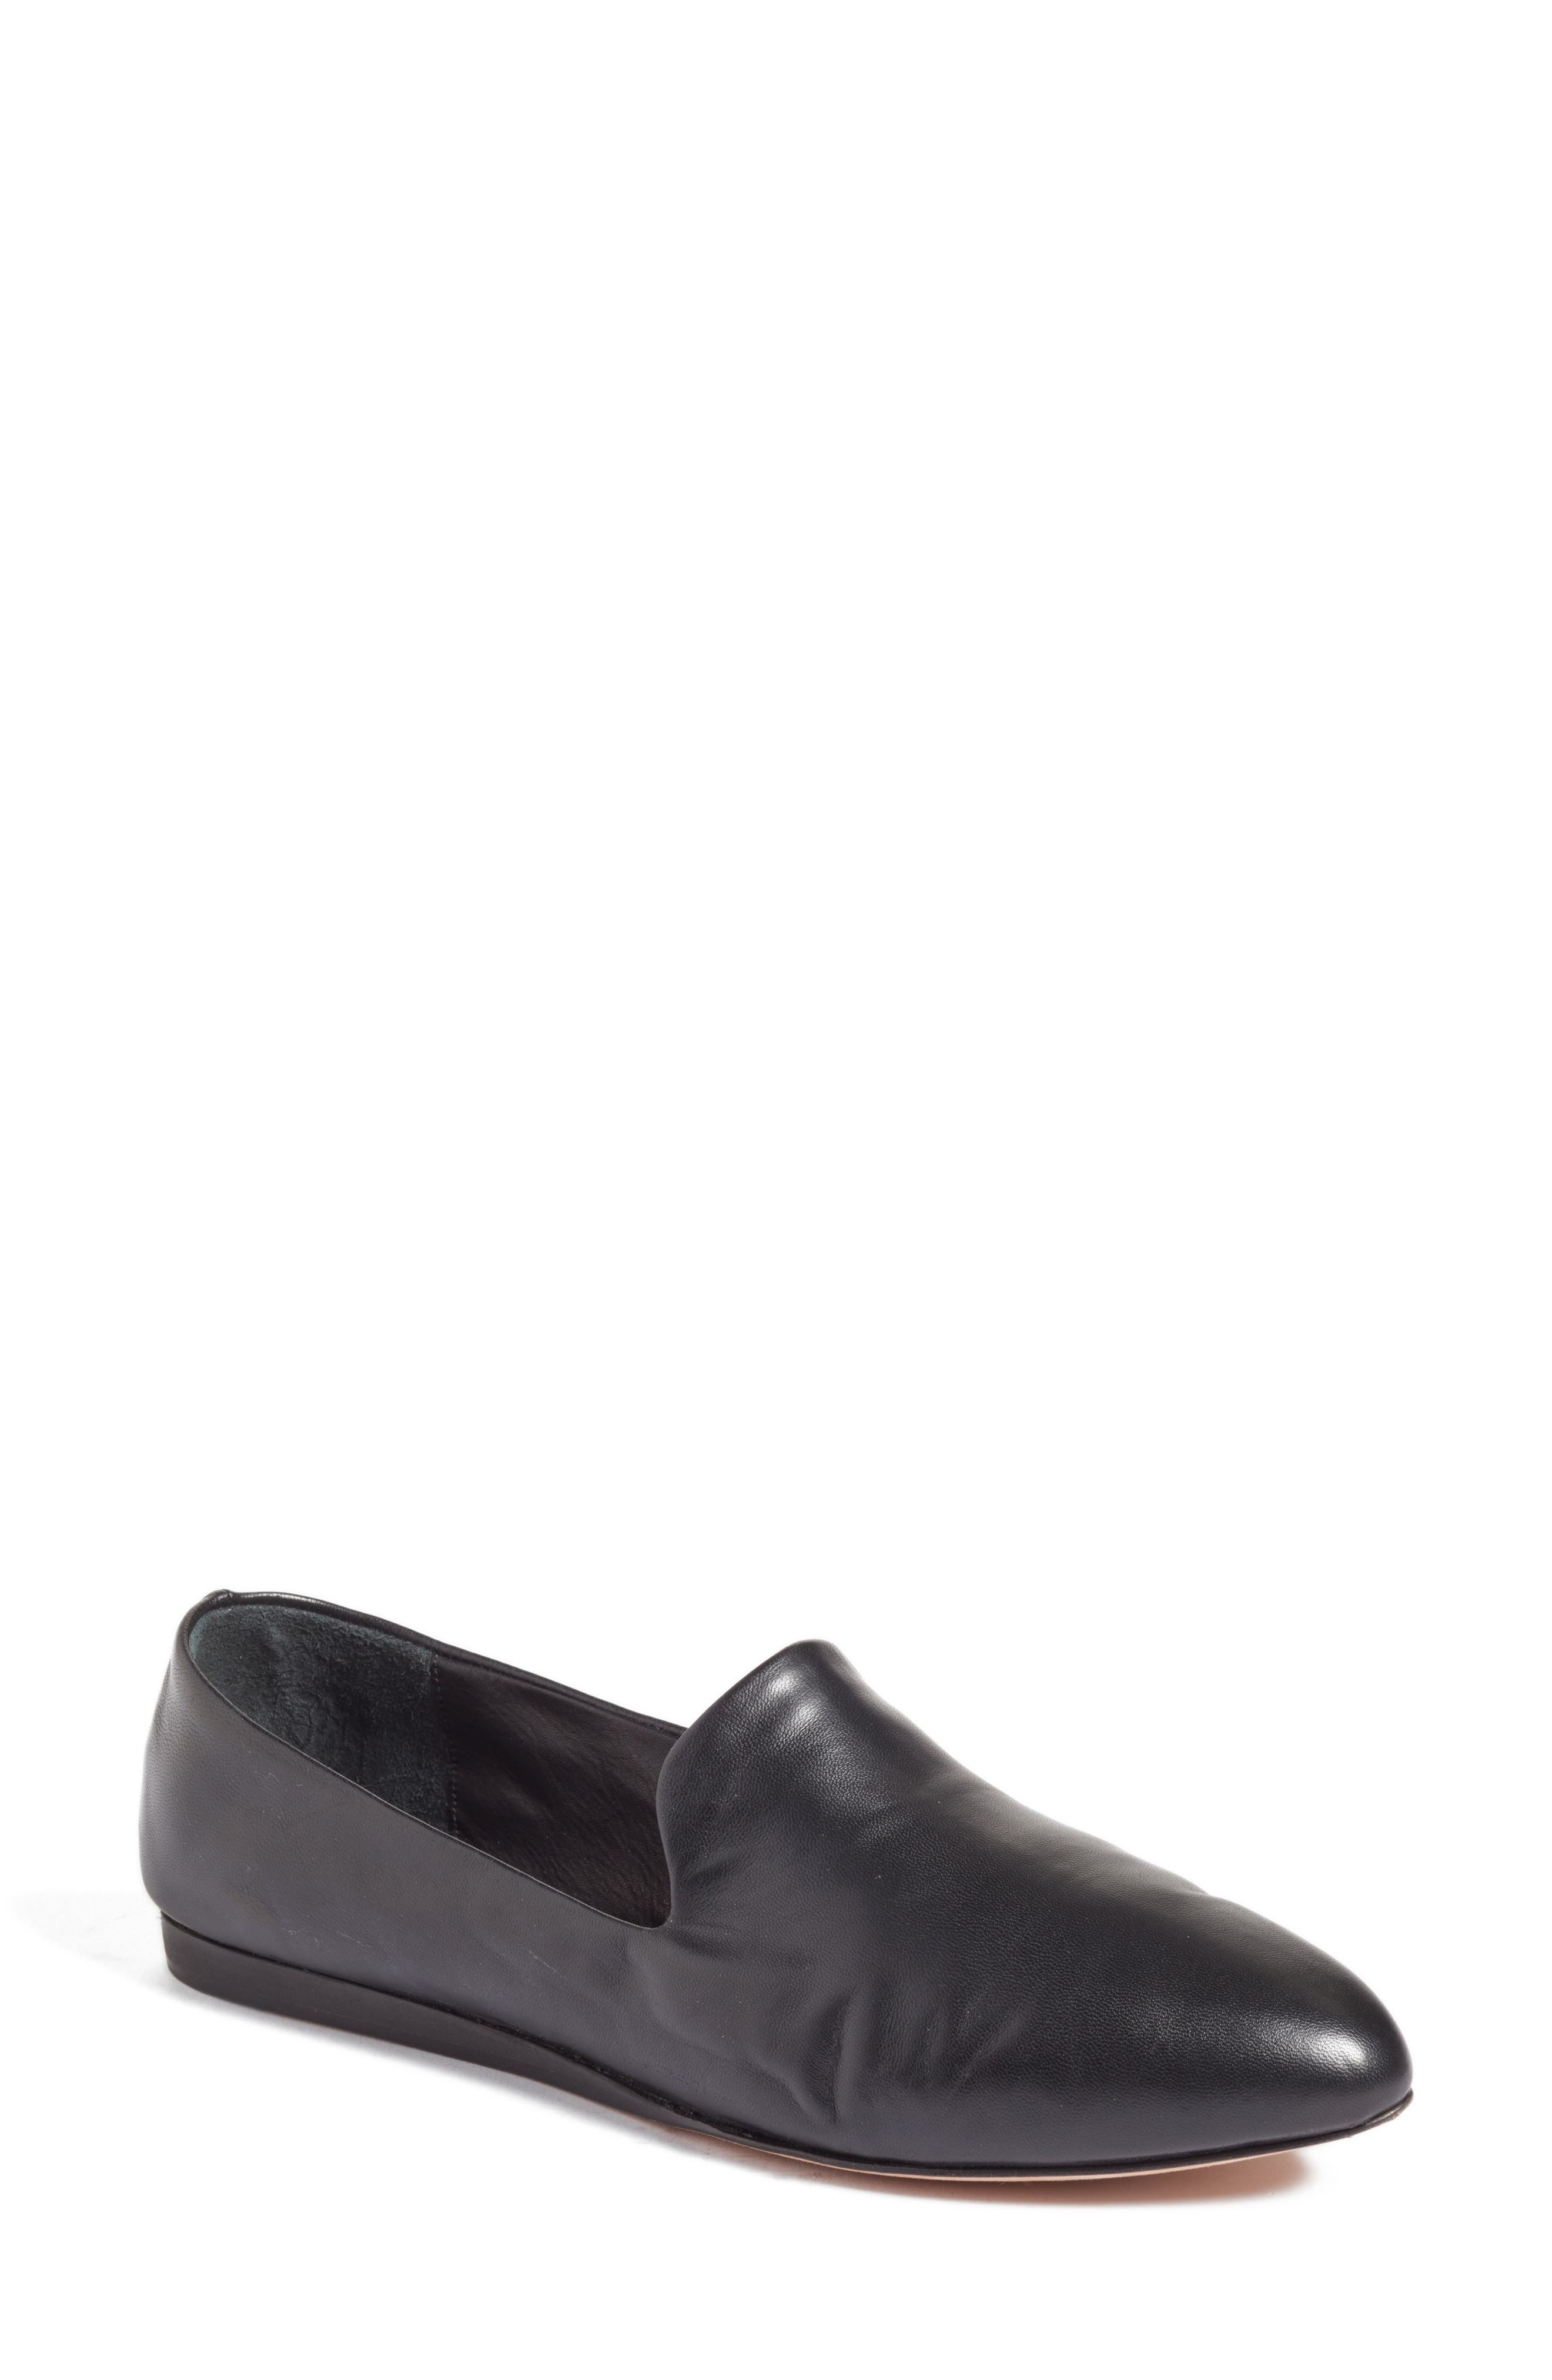 Main Image - Veronica Beard Griffin Pointy Toe Loafer (Women)